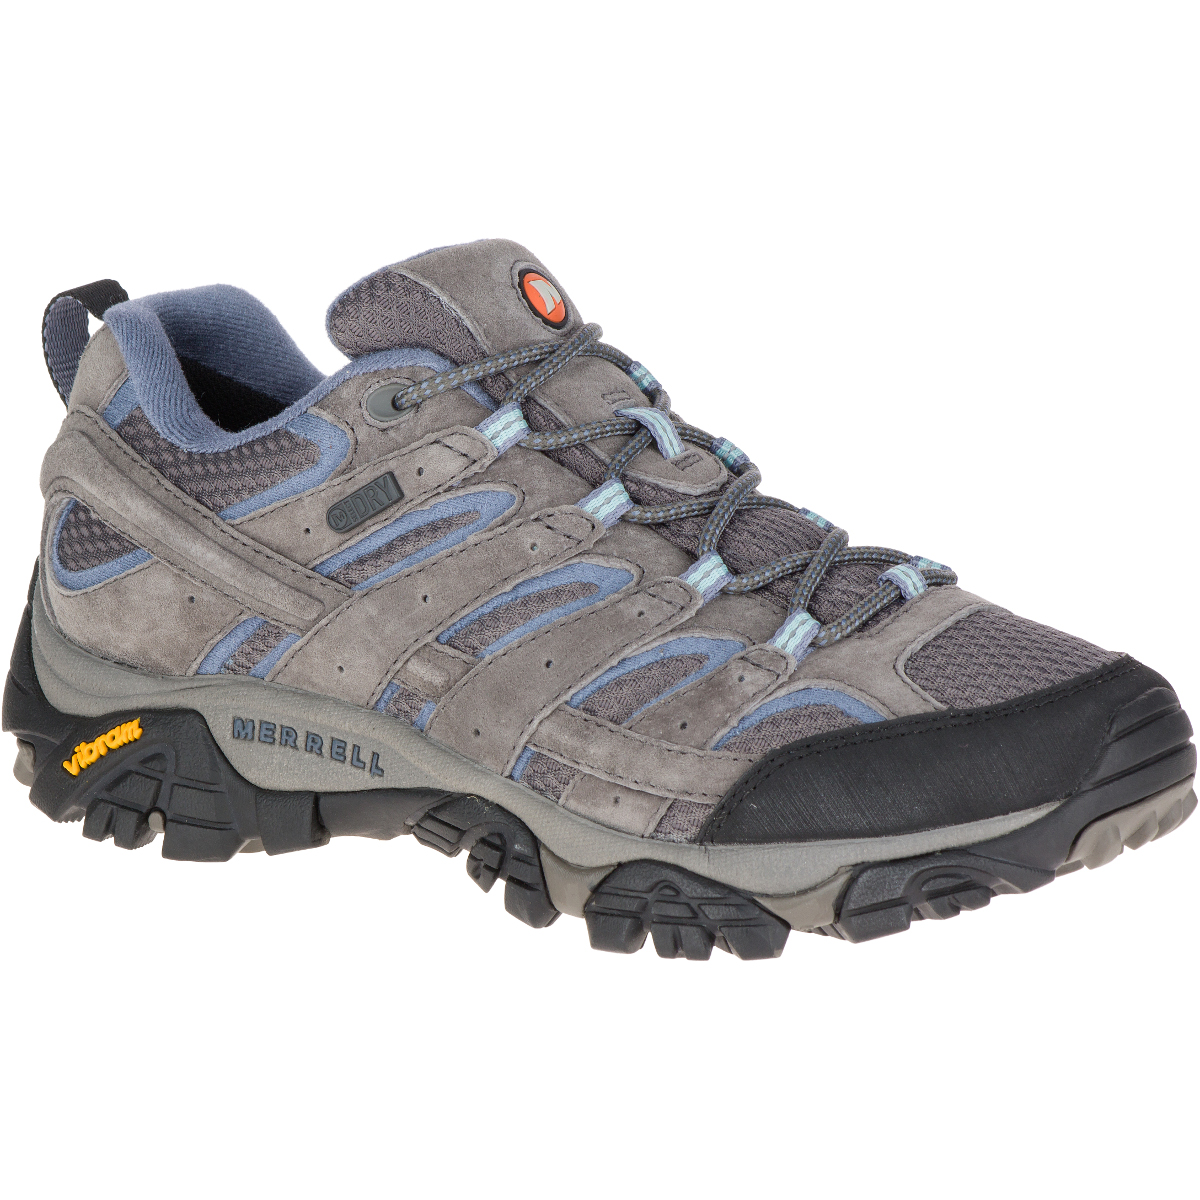 Merrell Women's Moab 2 Waterproof Hiking Shoes, Granite - Black, 6.5